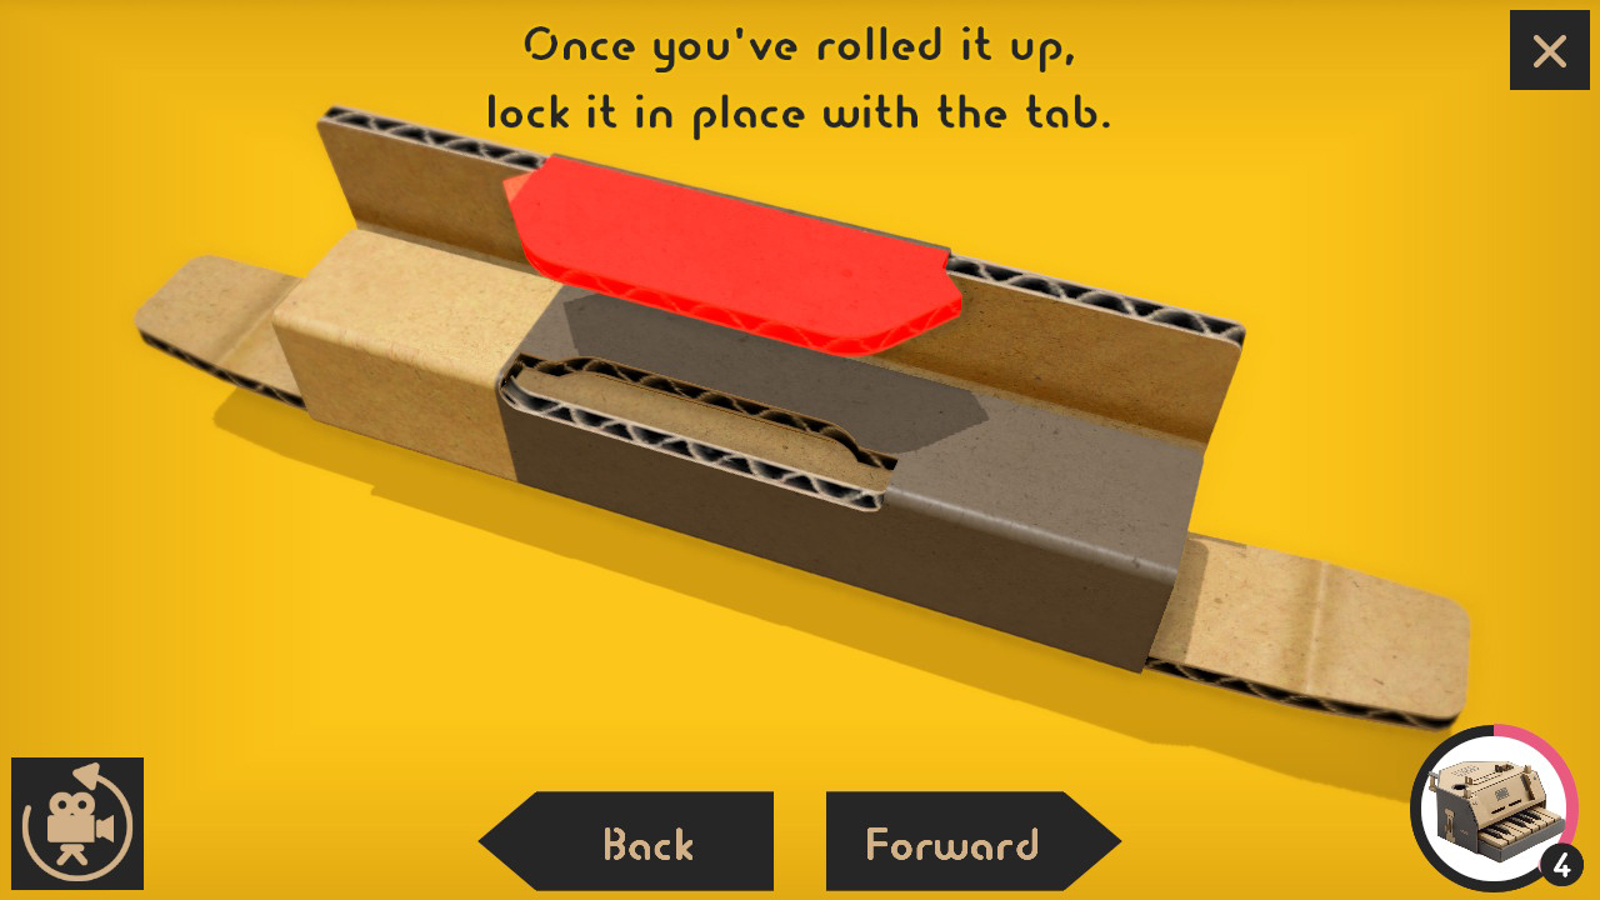 Labo's animated 3D instructions are even easier to follow than Lego's step-by-step build guides.